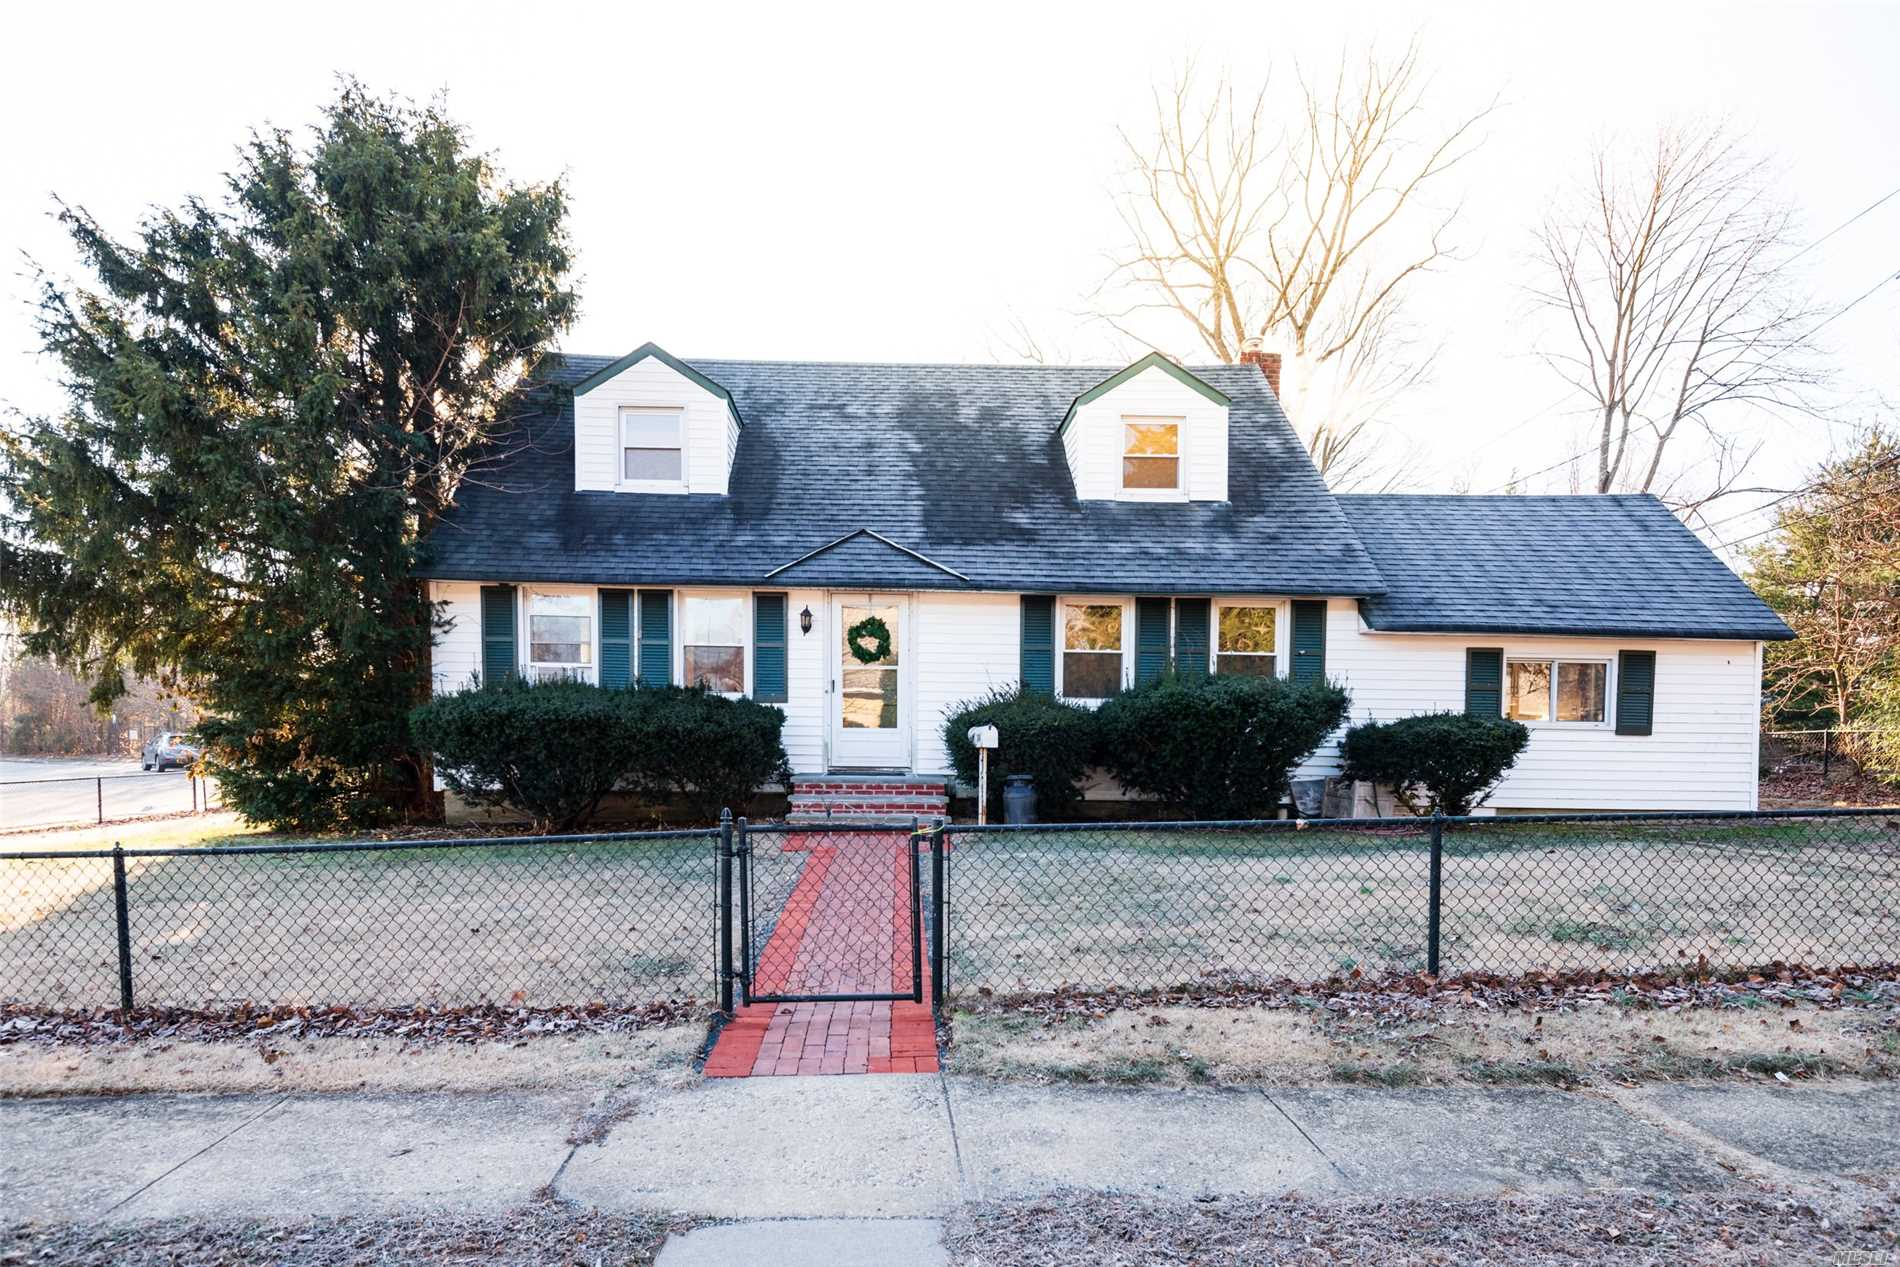 Great Cul-De-Sac Location & Easy Access. Cozy And Private House Features 3- Bedrooms, 2- Full Bath, Oversized Kitchen With Vaulted Ceilings & Slider Going To Backyard. Fully Finished Basement Perfect For Play Room Or Gym. Driveway For Parking! Come & See! Won't Last Long!